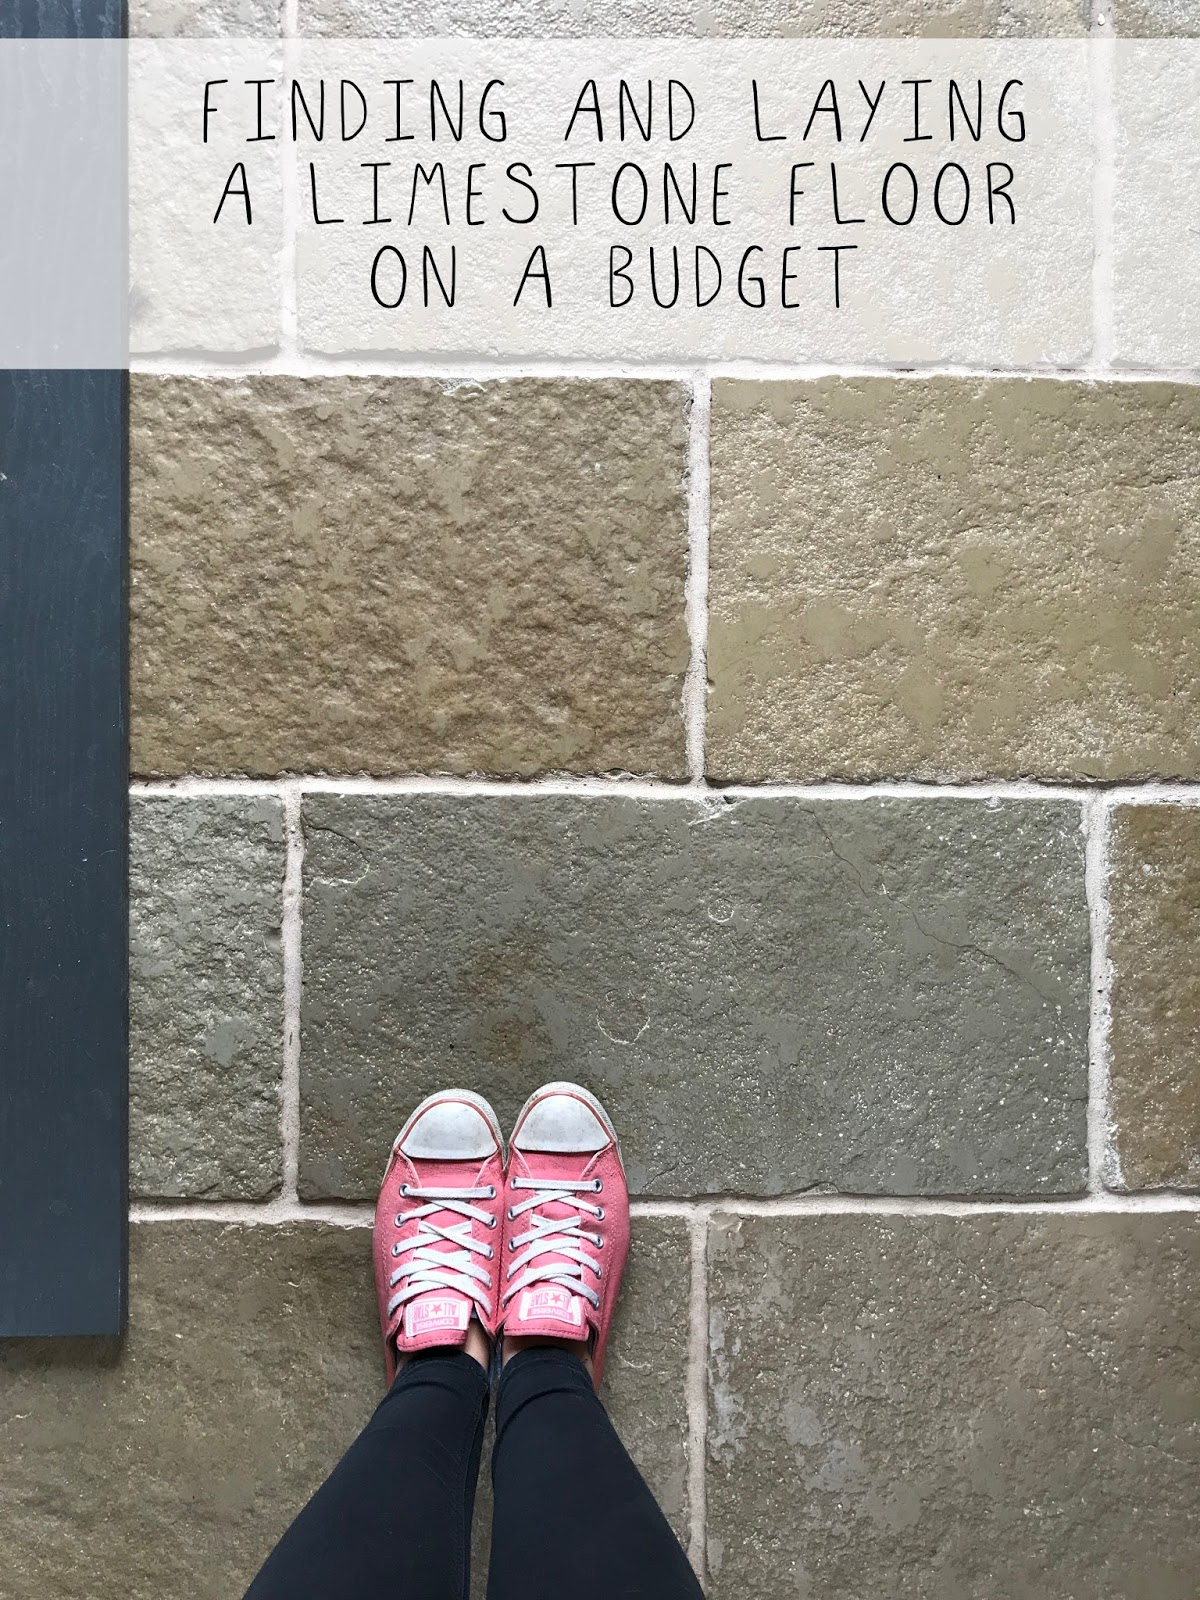 Finding And Laying a Limestone Floor on a Budget